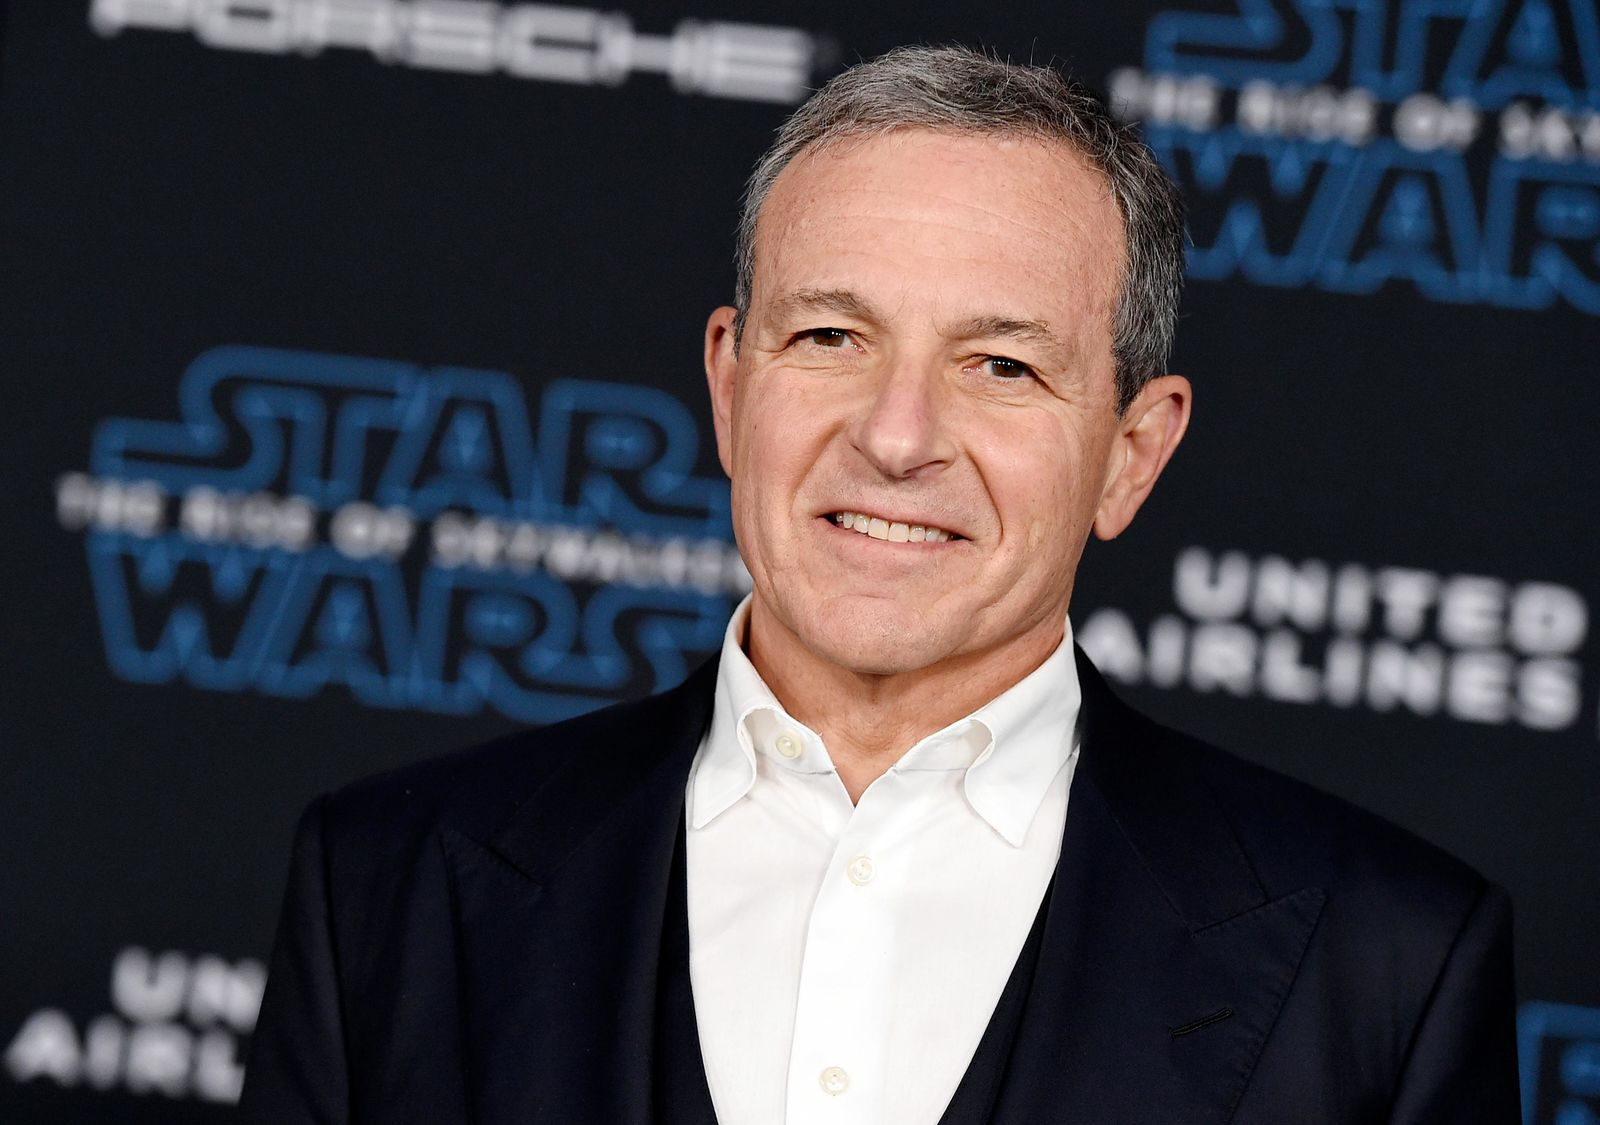 "FILE - In this Dec. 16, 2019, file photo, Disney CEO Robert Iger arrives at the world premiere of ""Star Wars: The Rise of Skywalker"", in Los Angeles  The Walt Disney Co. has named Bob Chapek CEO, replacing Bob Iger, effective immediately, the company announced Tuesday, Feb. 25, 2020.  (Jordan Strauss/Invision/AP, FIle)"